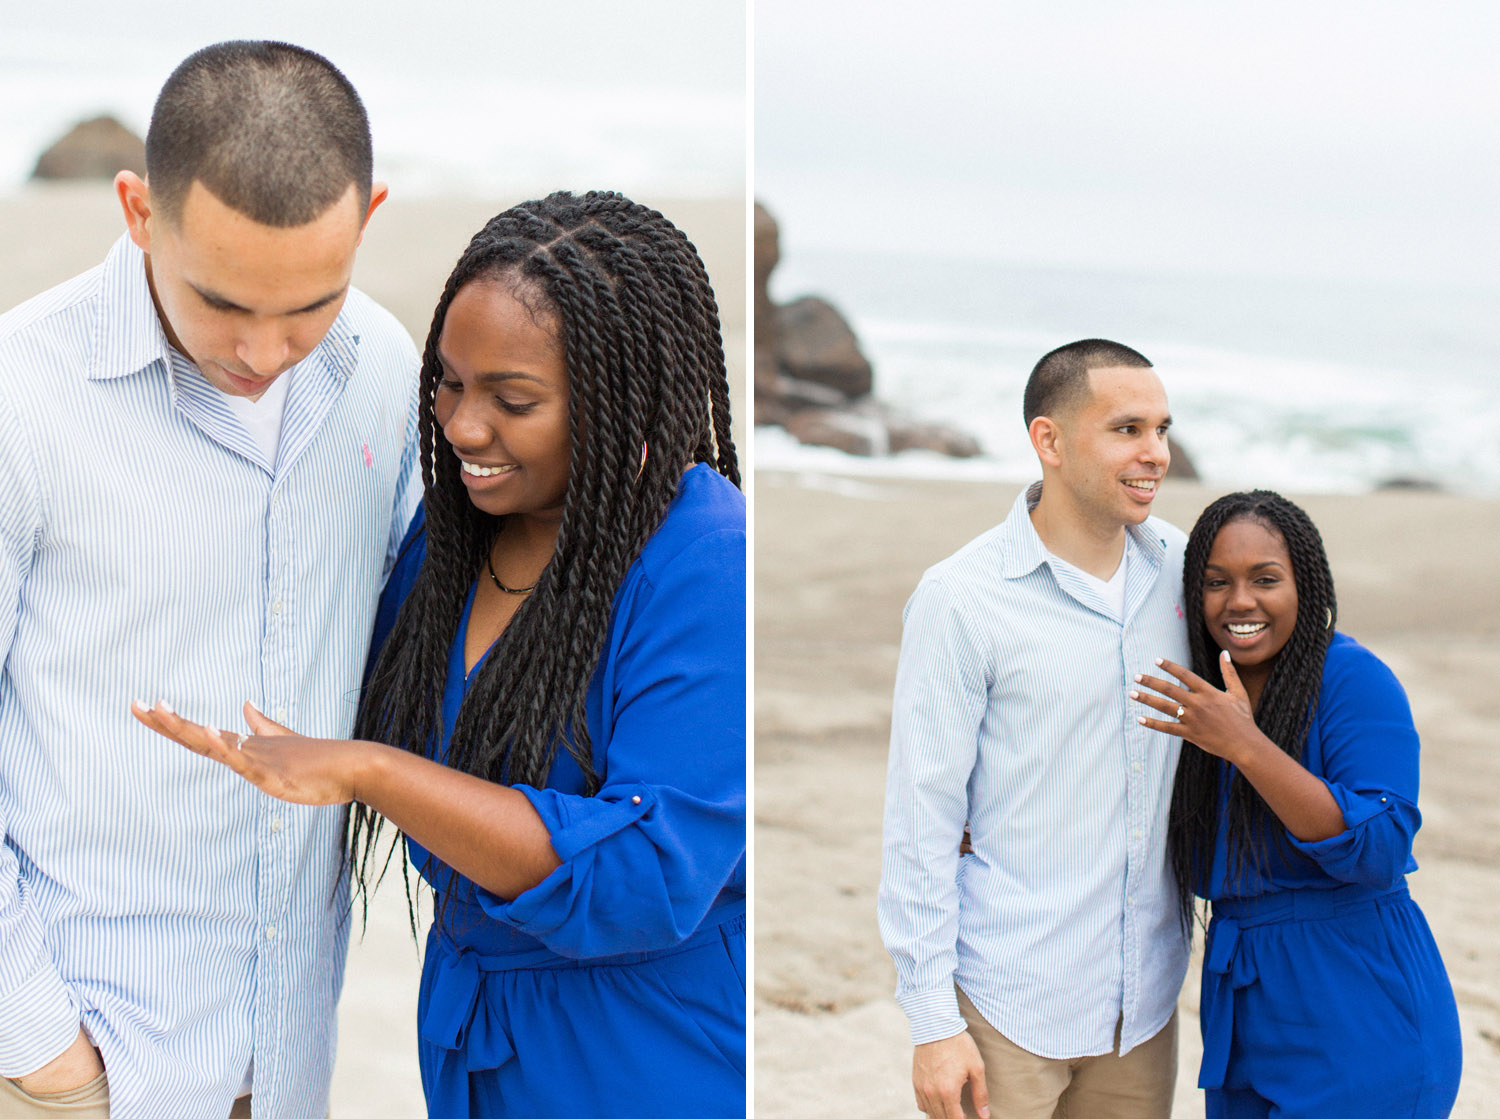 los-angeles-proposal-photographer008.jpg